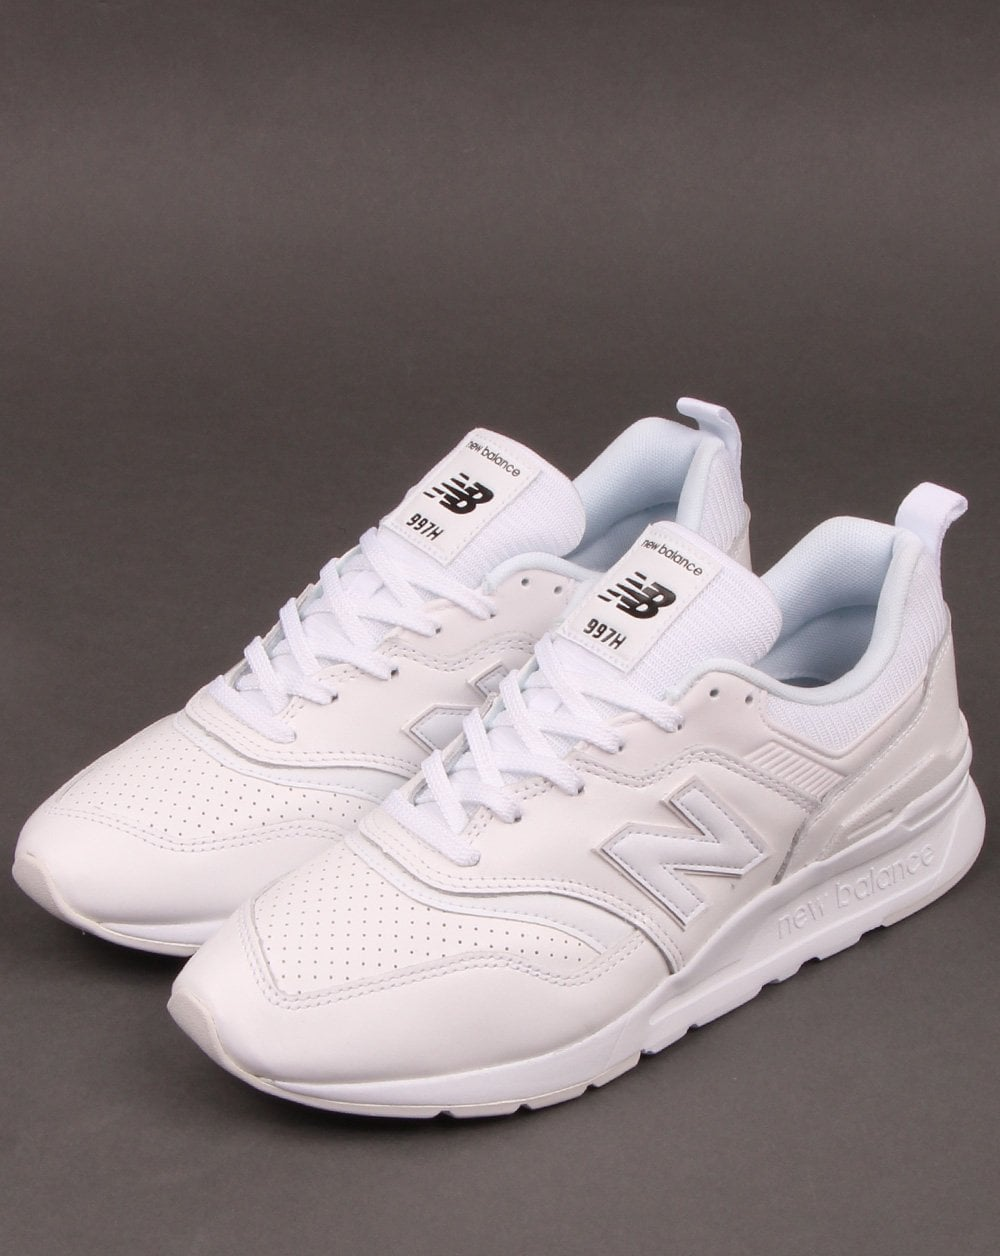 New Balance 997 Leather Trainers White